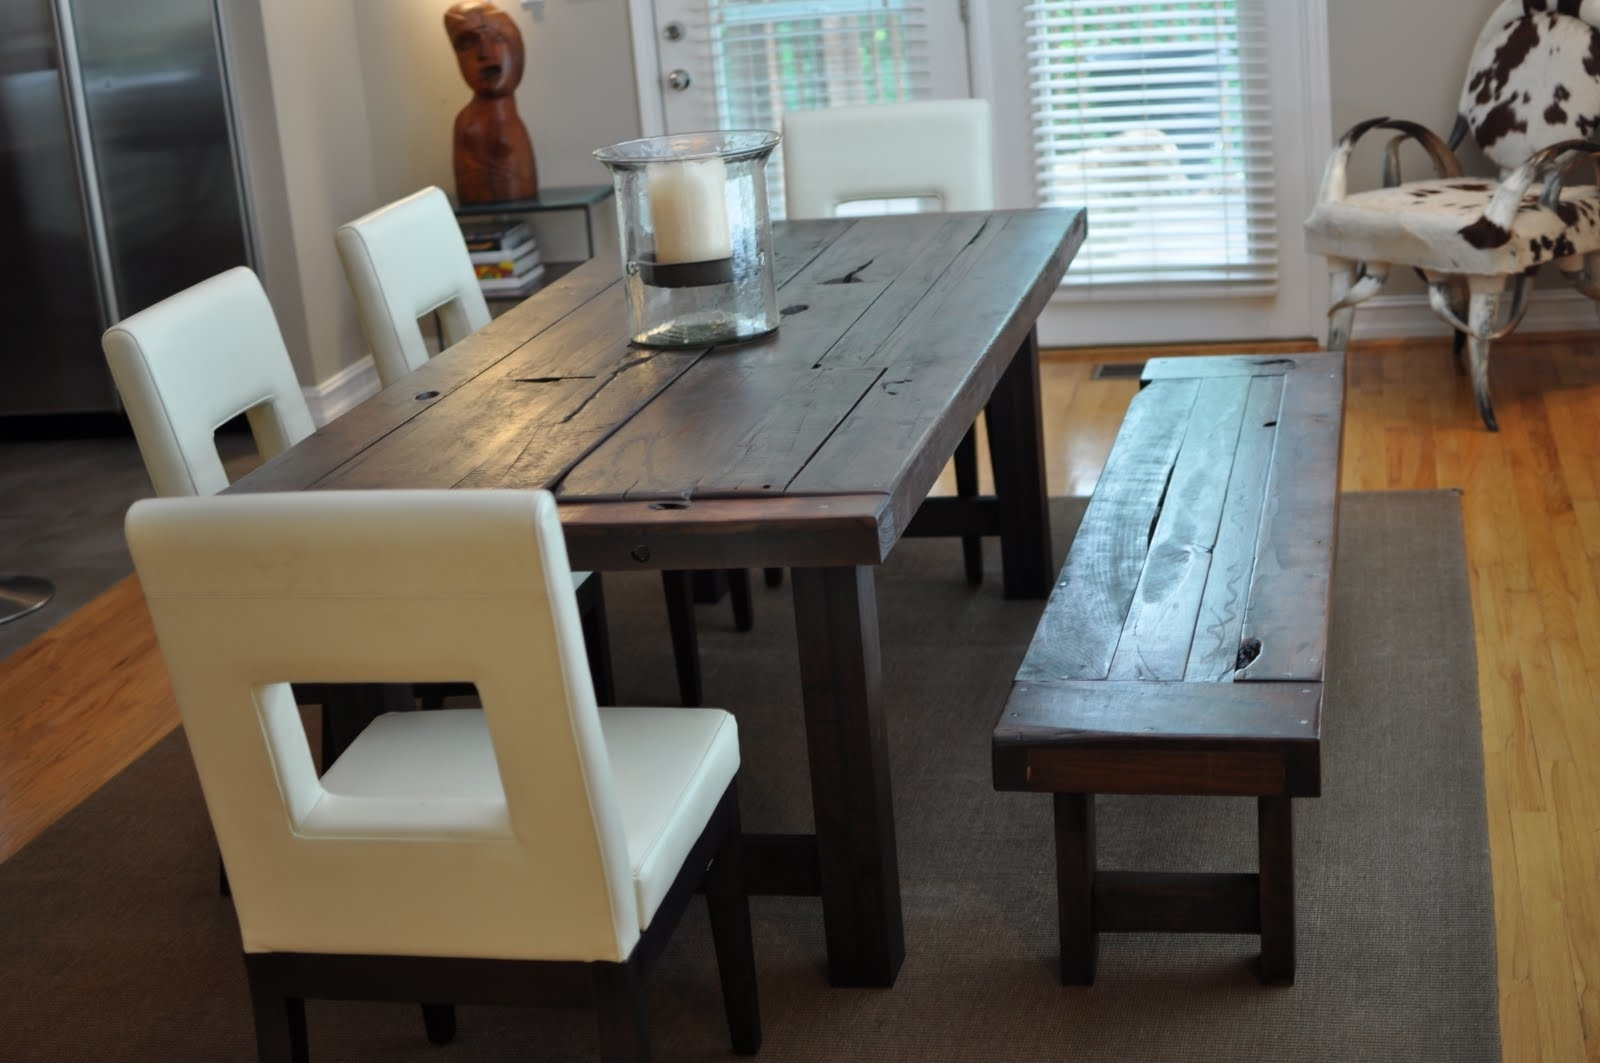 Dark Wooden Dining Tables Regarding Most Current Dining Room Handcrafted Wooden Dining Tables Dark Wood Dining Table (View 10 of 25)